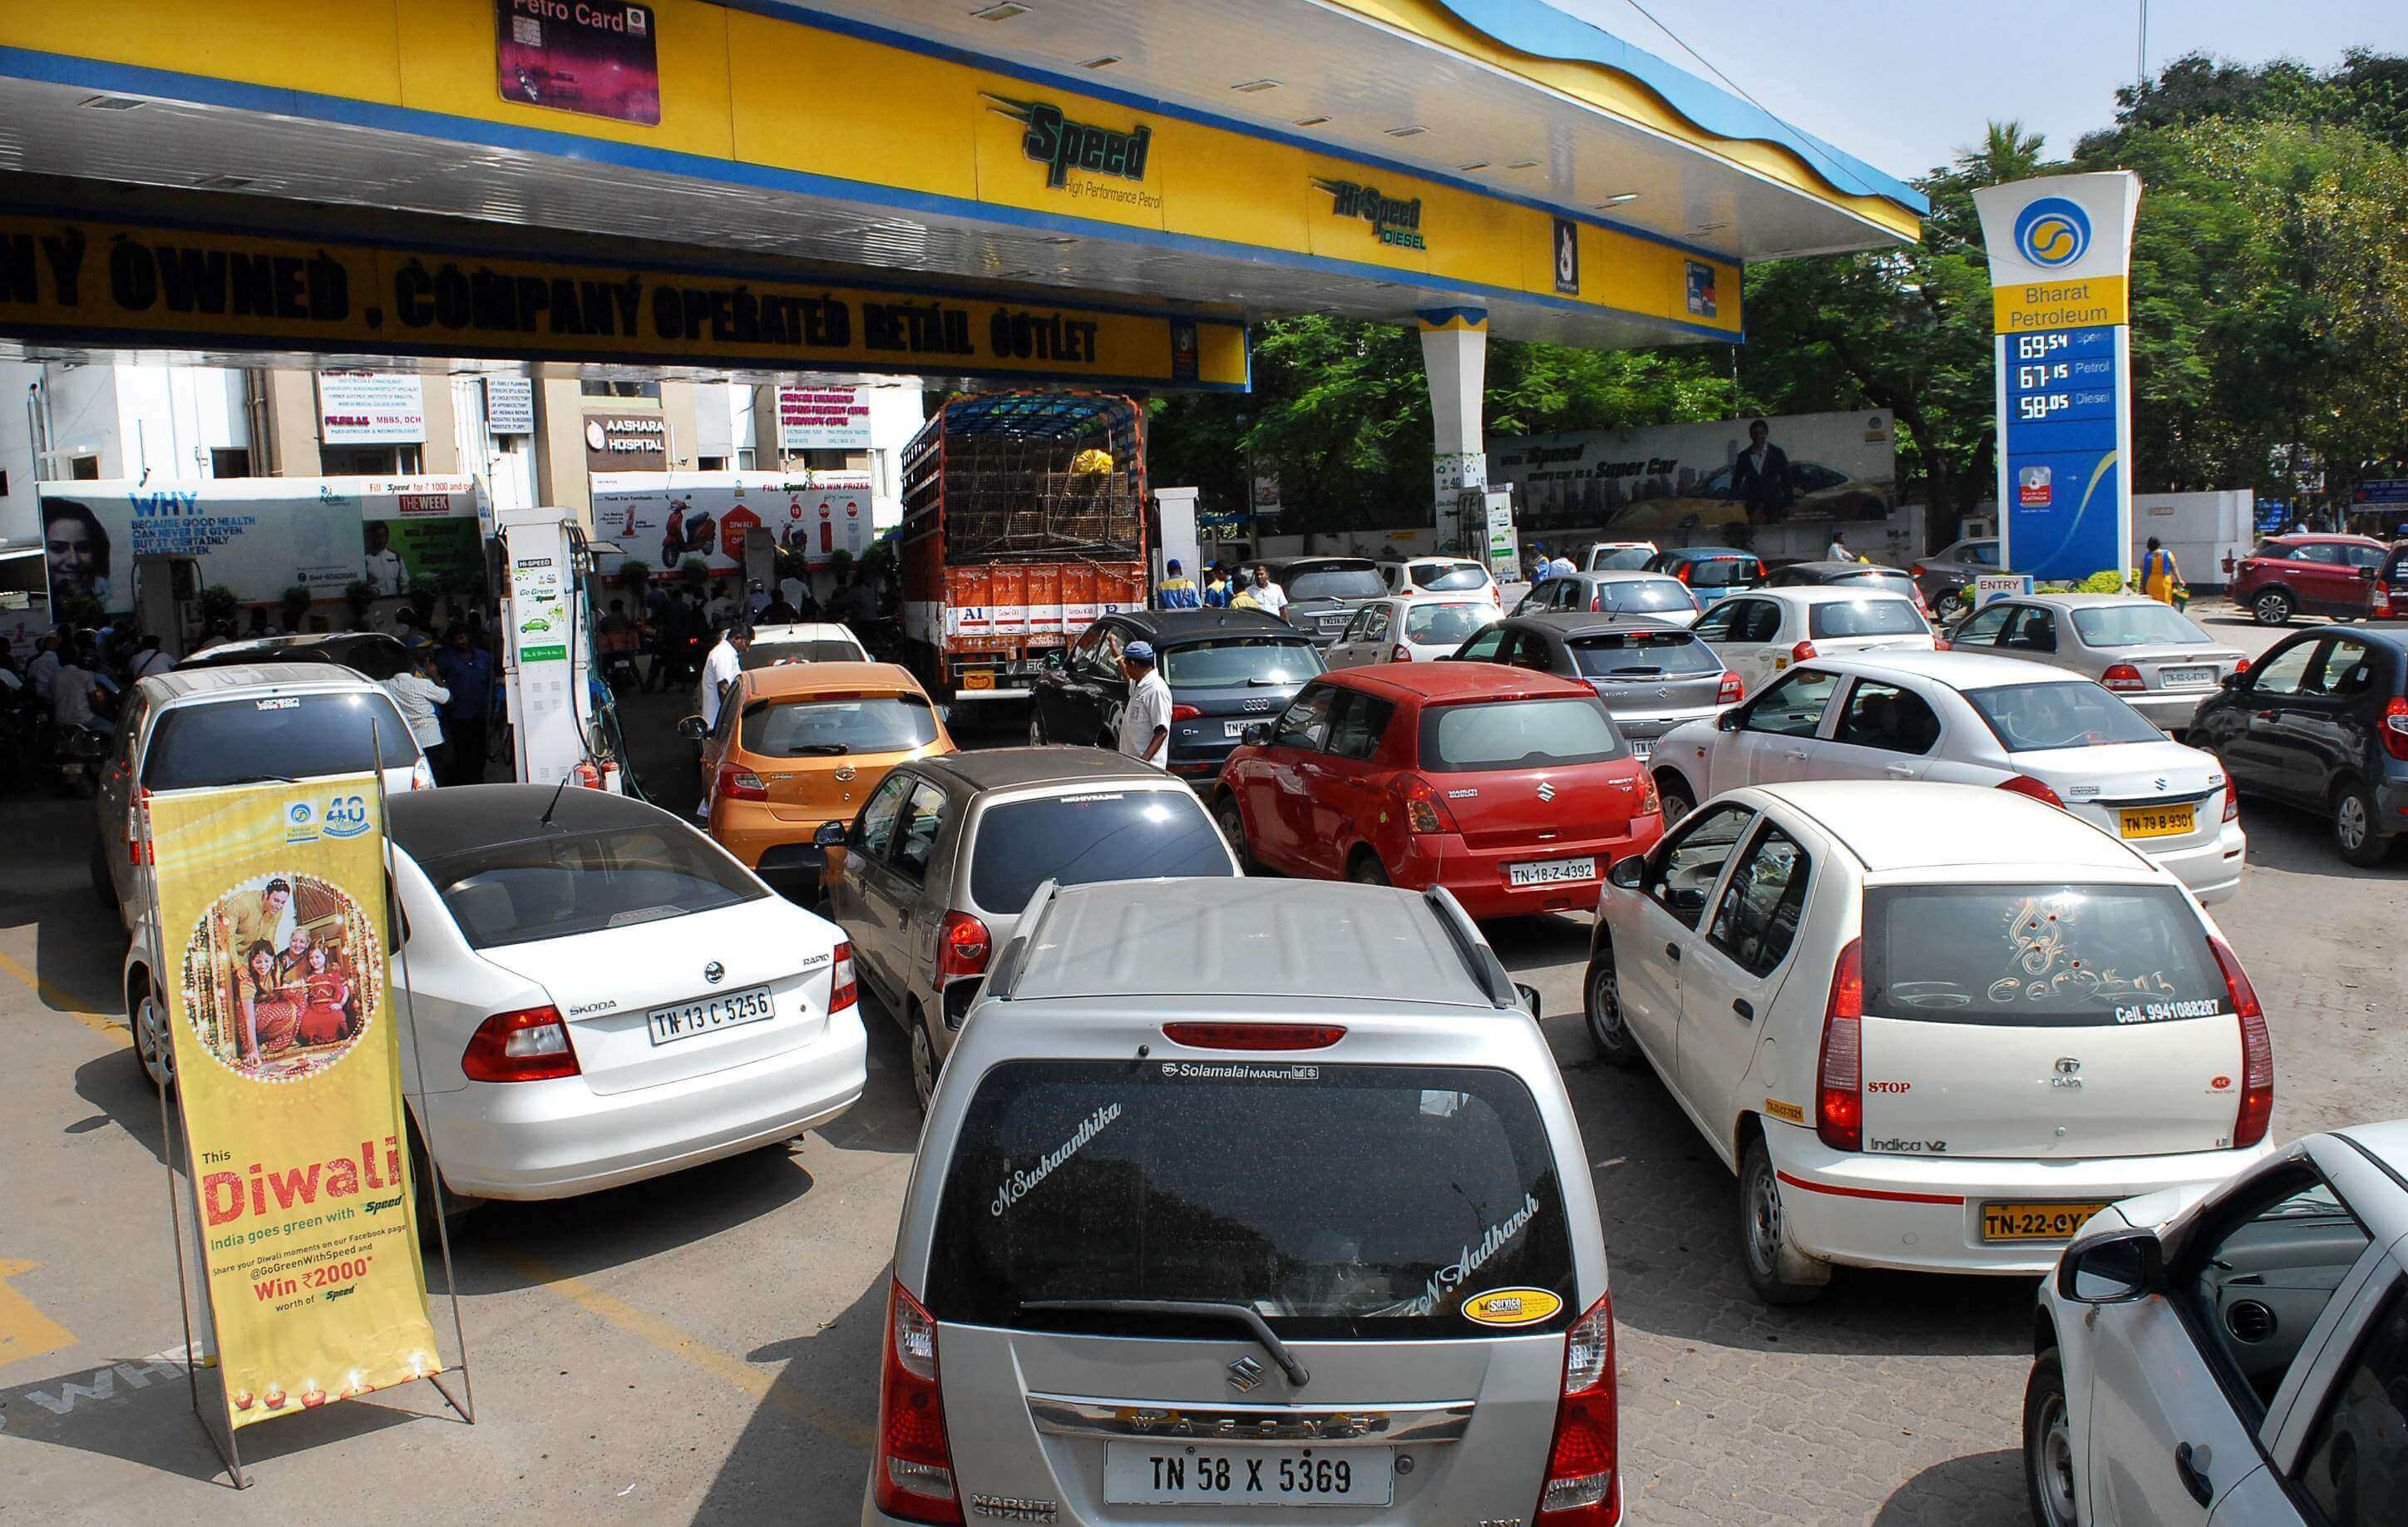 Why does India need MyPetrolPump?